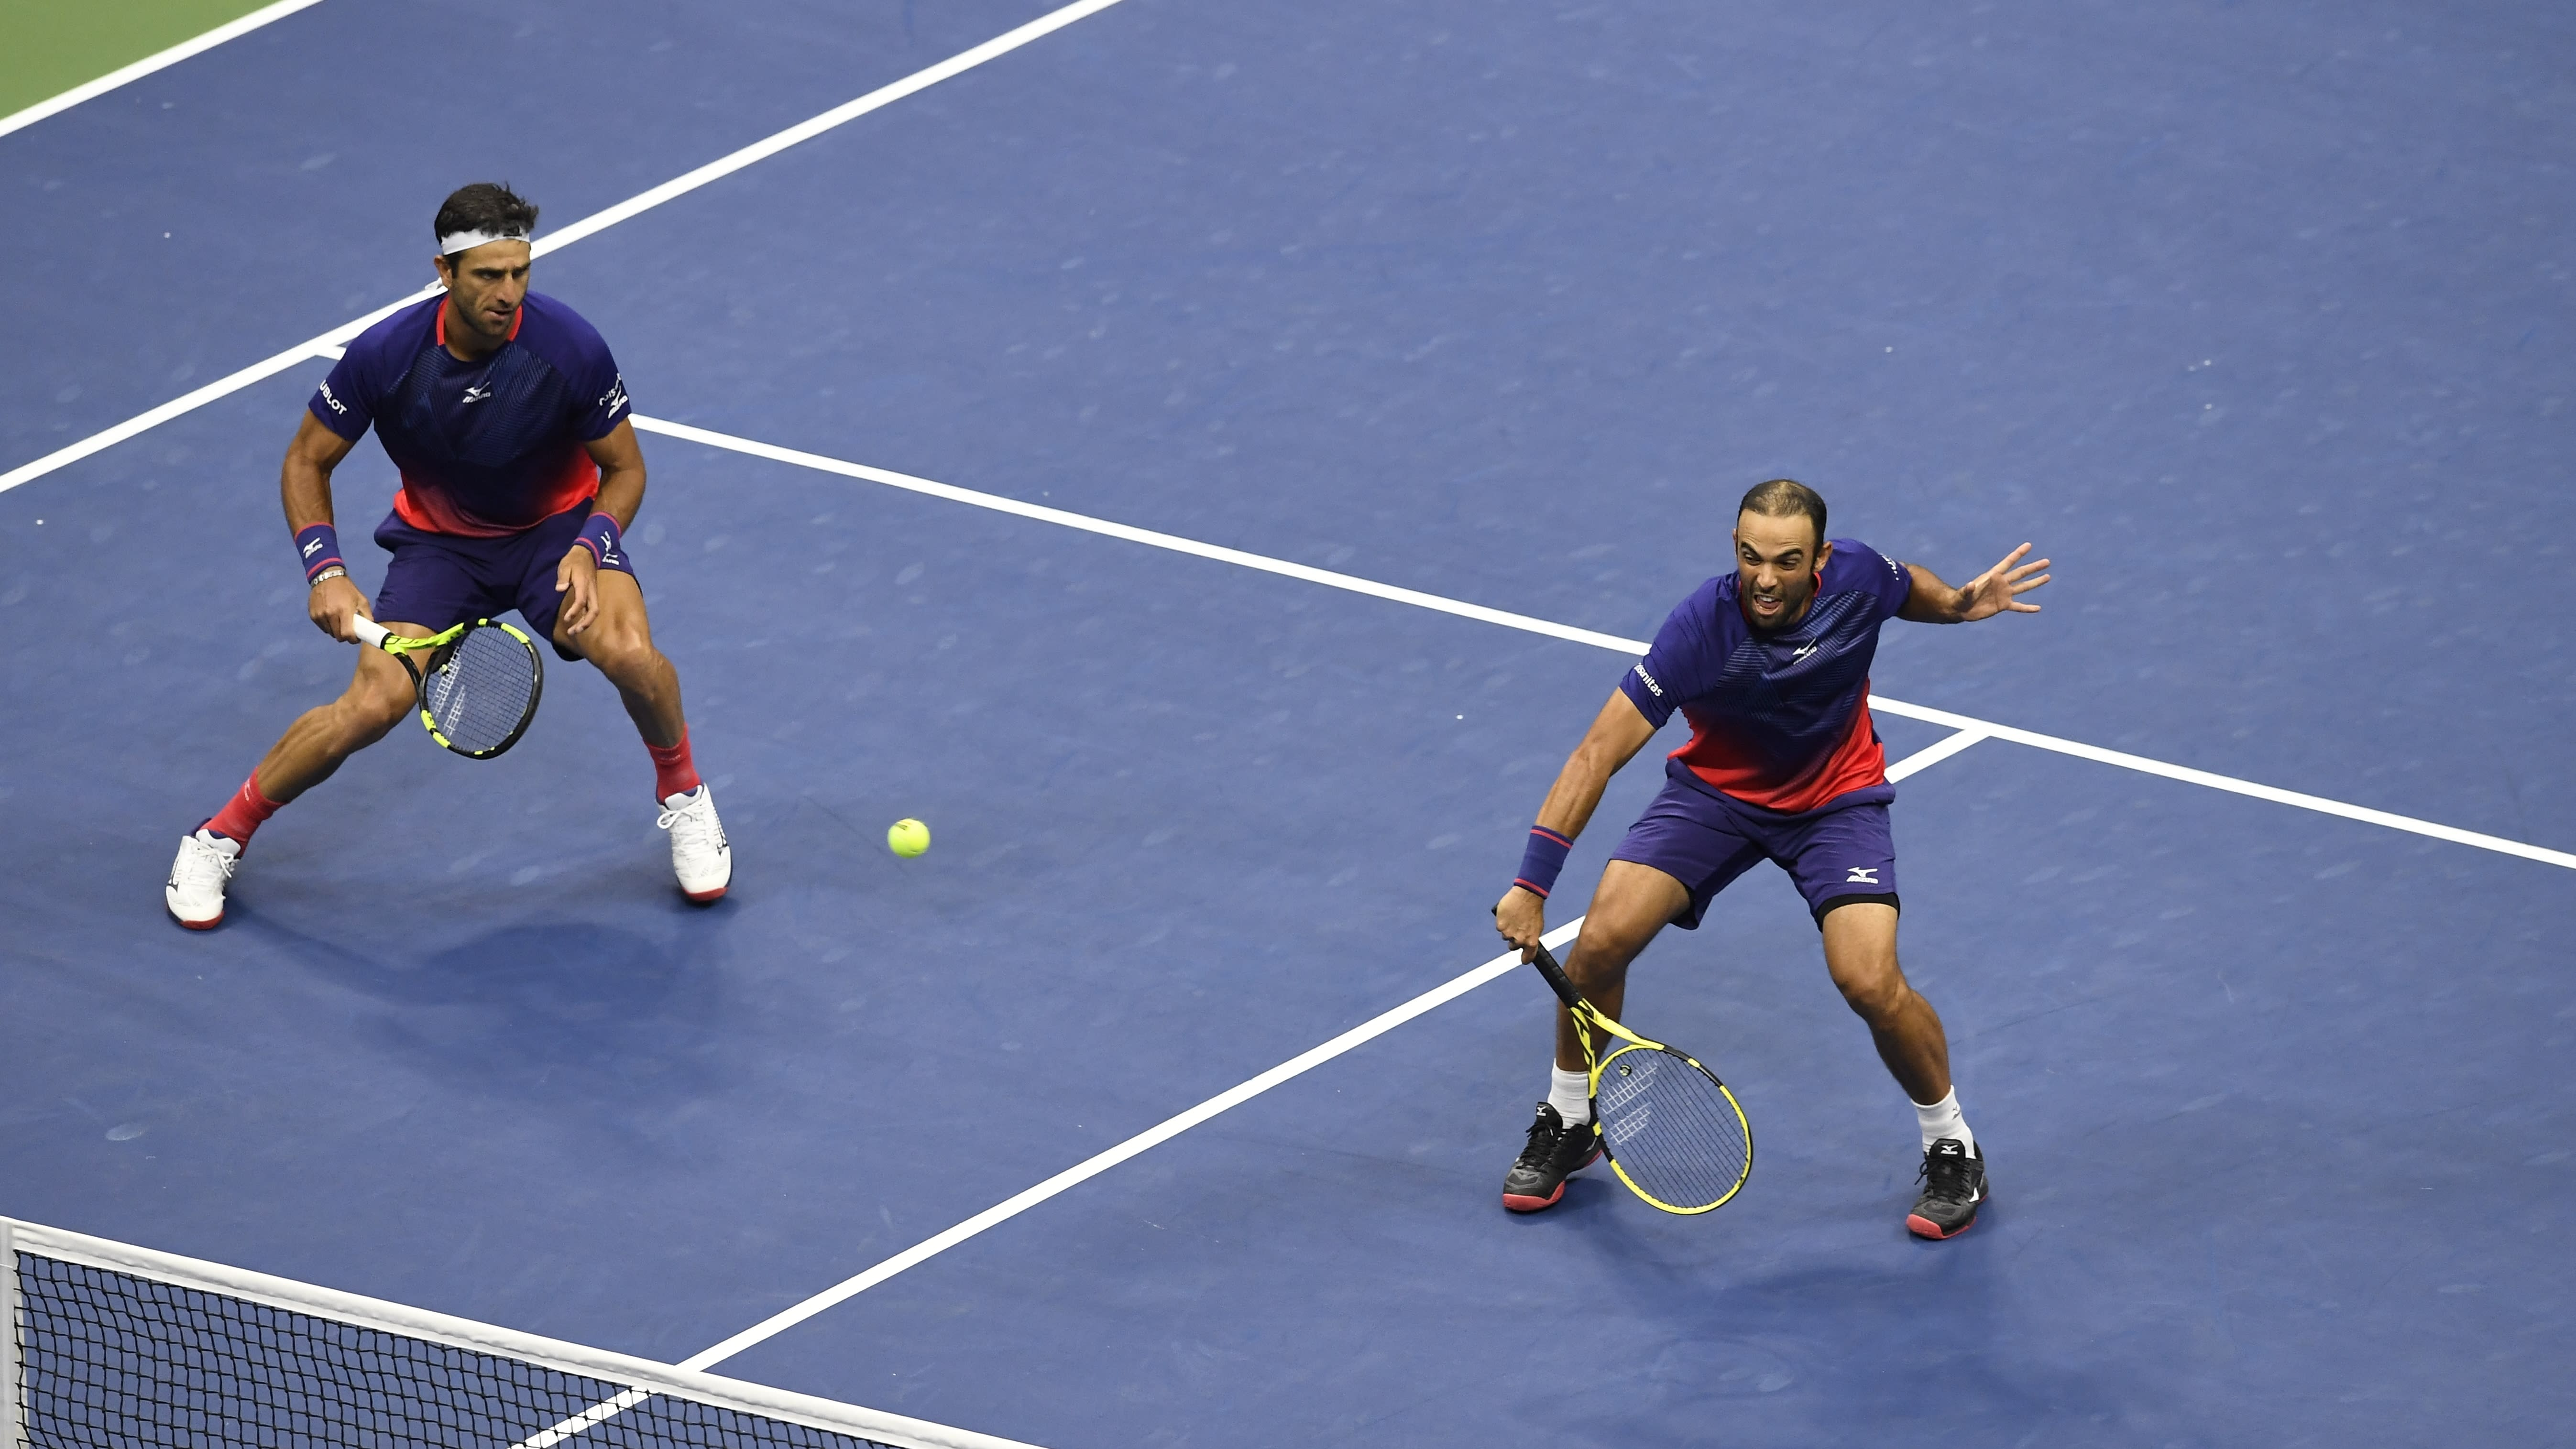 Robert Farah, and Juan Sebastian Cabal, both of Colombia, return a shot to Marcel Granollers, of Spain, and Horacio Zeballos during the final match of the U.S. Open tennis championships Friday, Sept. 6, 2019, in New York. (AP Photo/Sarah Stier)